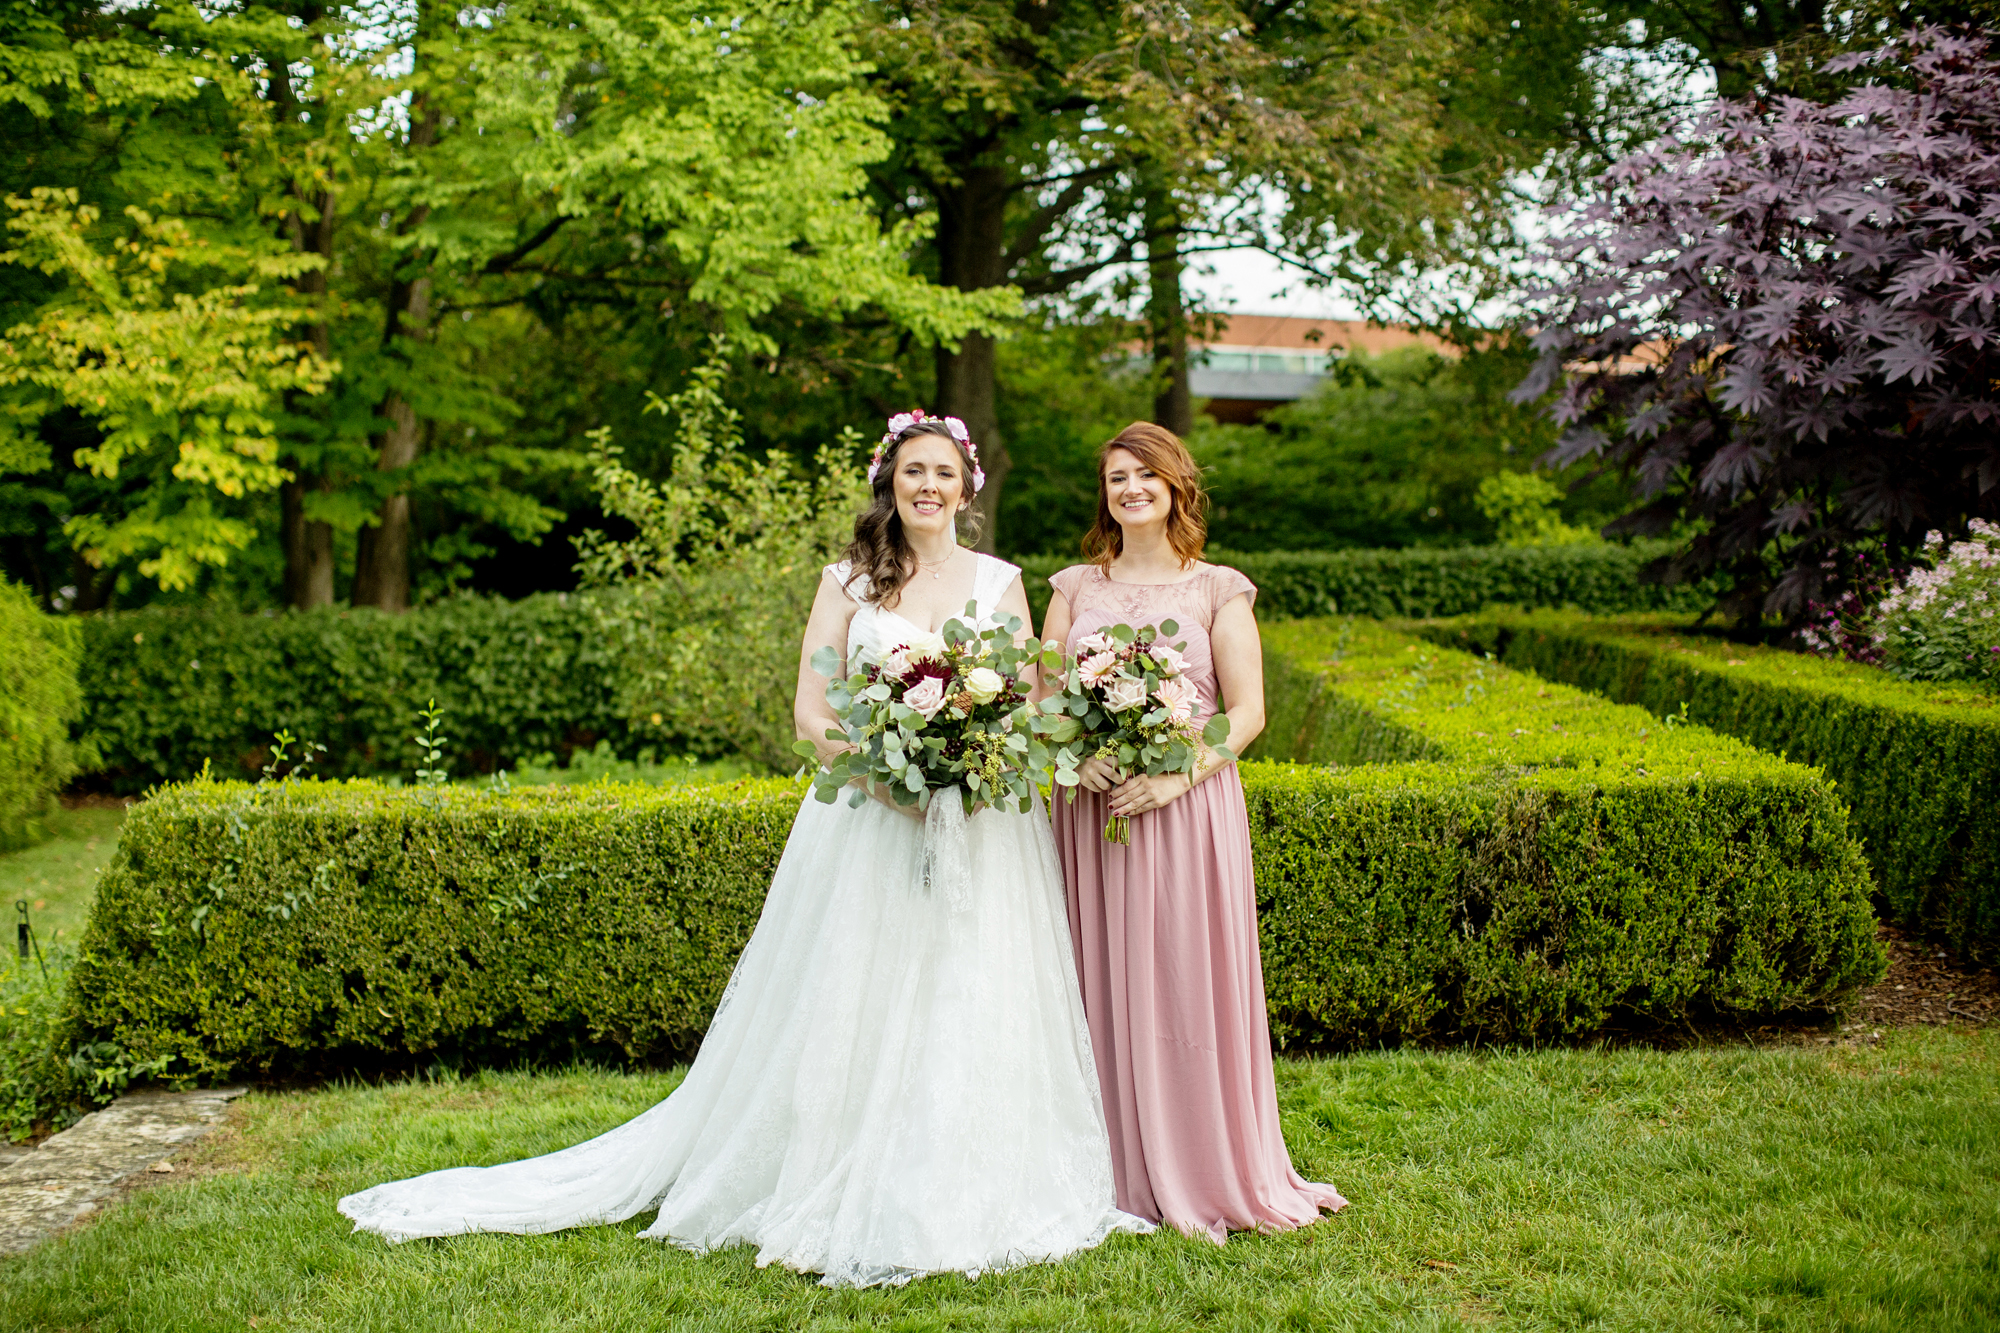 Seriously_Sabrina_Photography_Lisle_Illinois_Morton_Arboretum_Wedding_Day_Gowen32.jpg